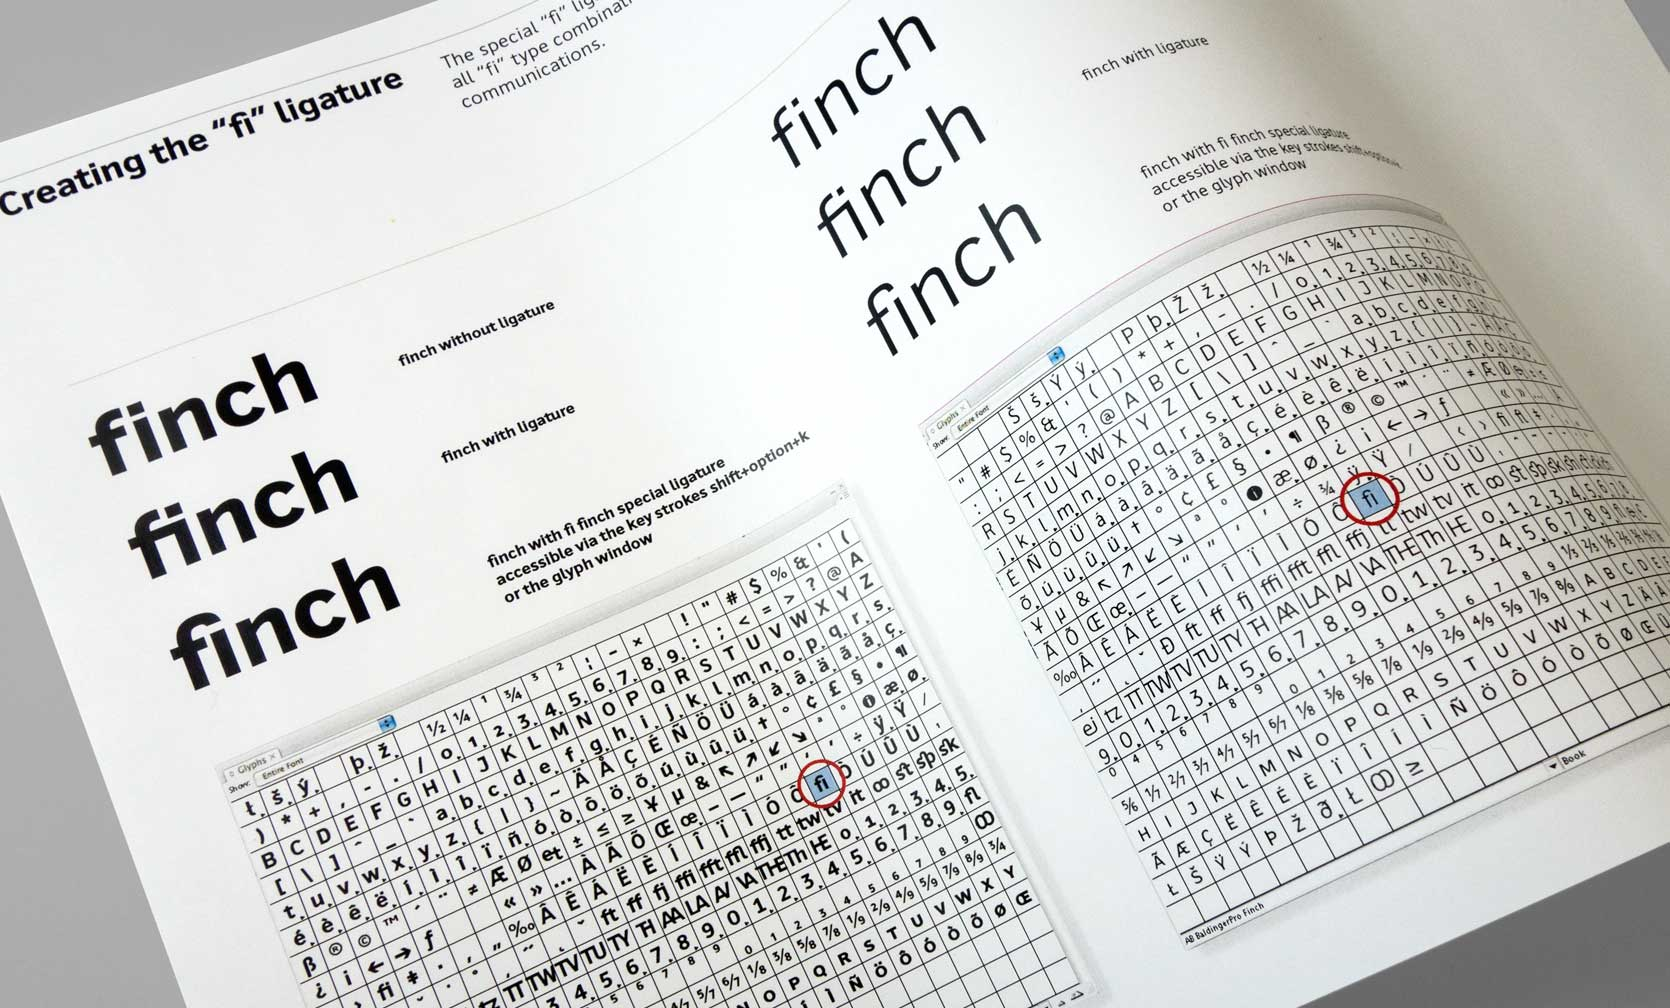 finch paper Want to work for finch paper get the best facts on finch paper's employee reviews, salaries, interviews, and even the culture overview here.